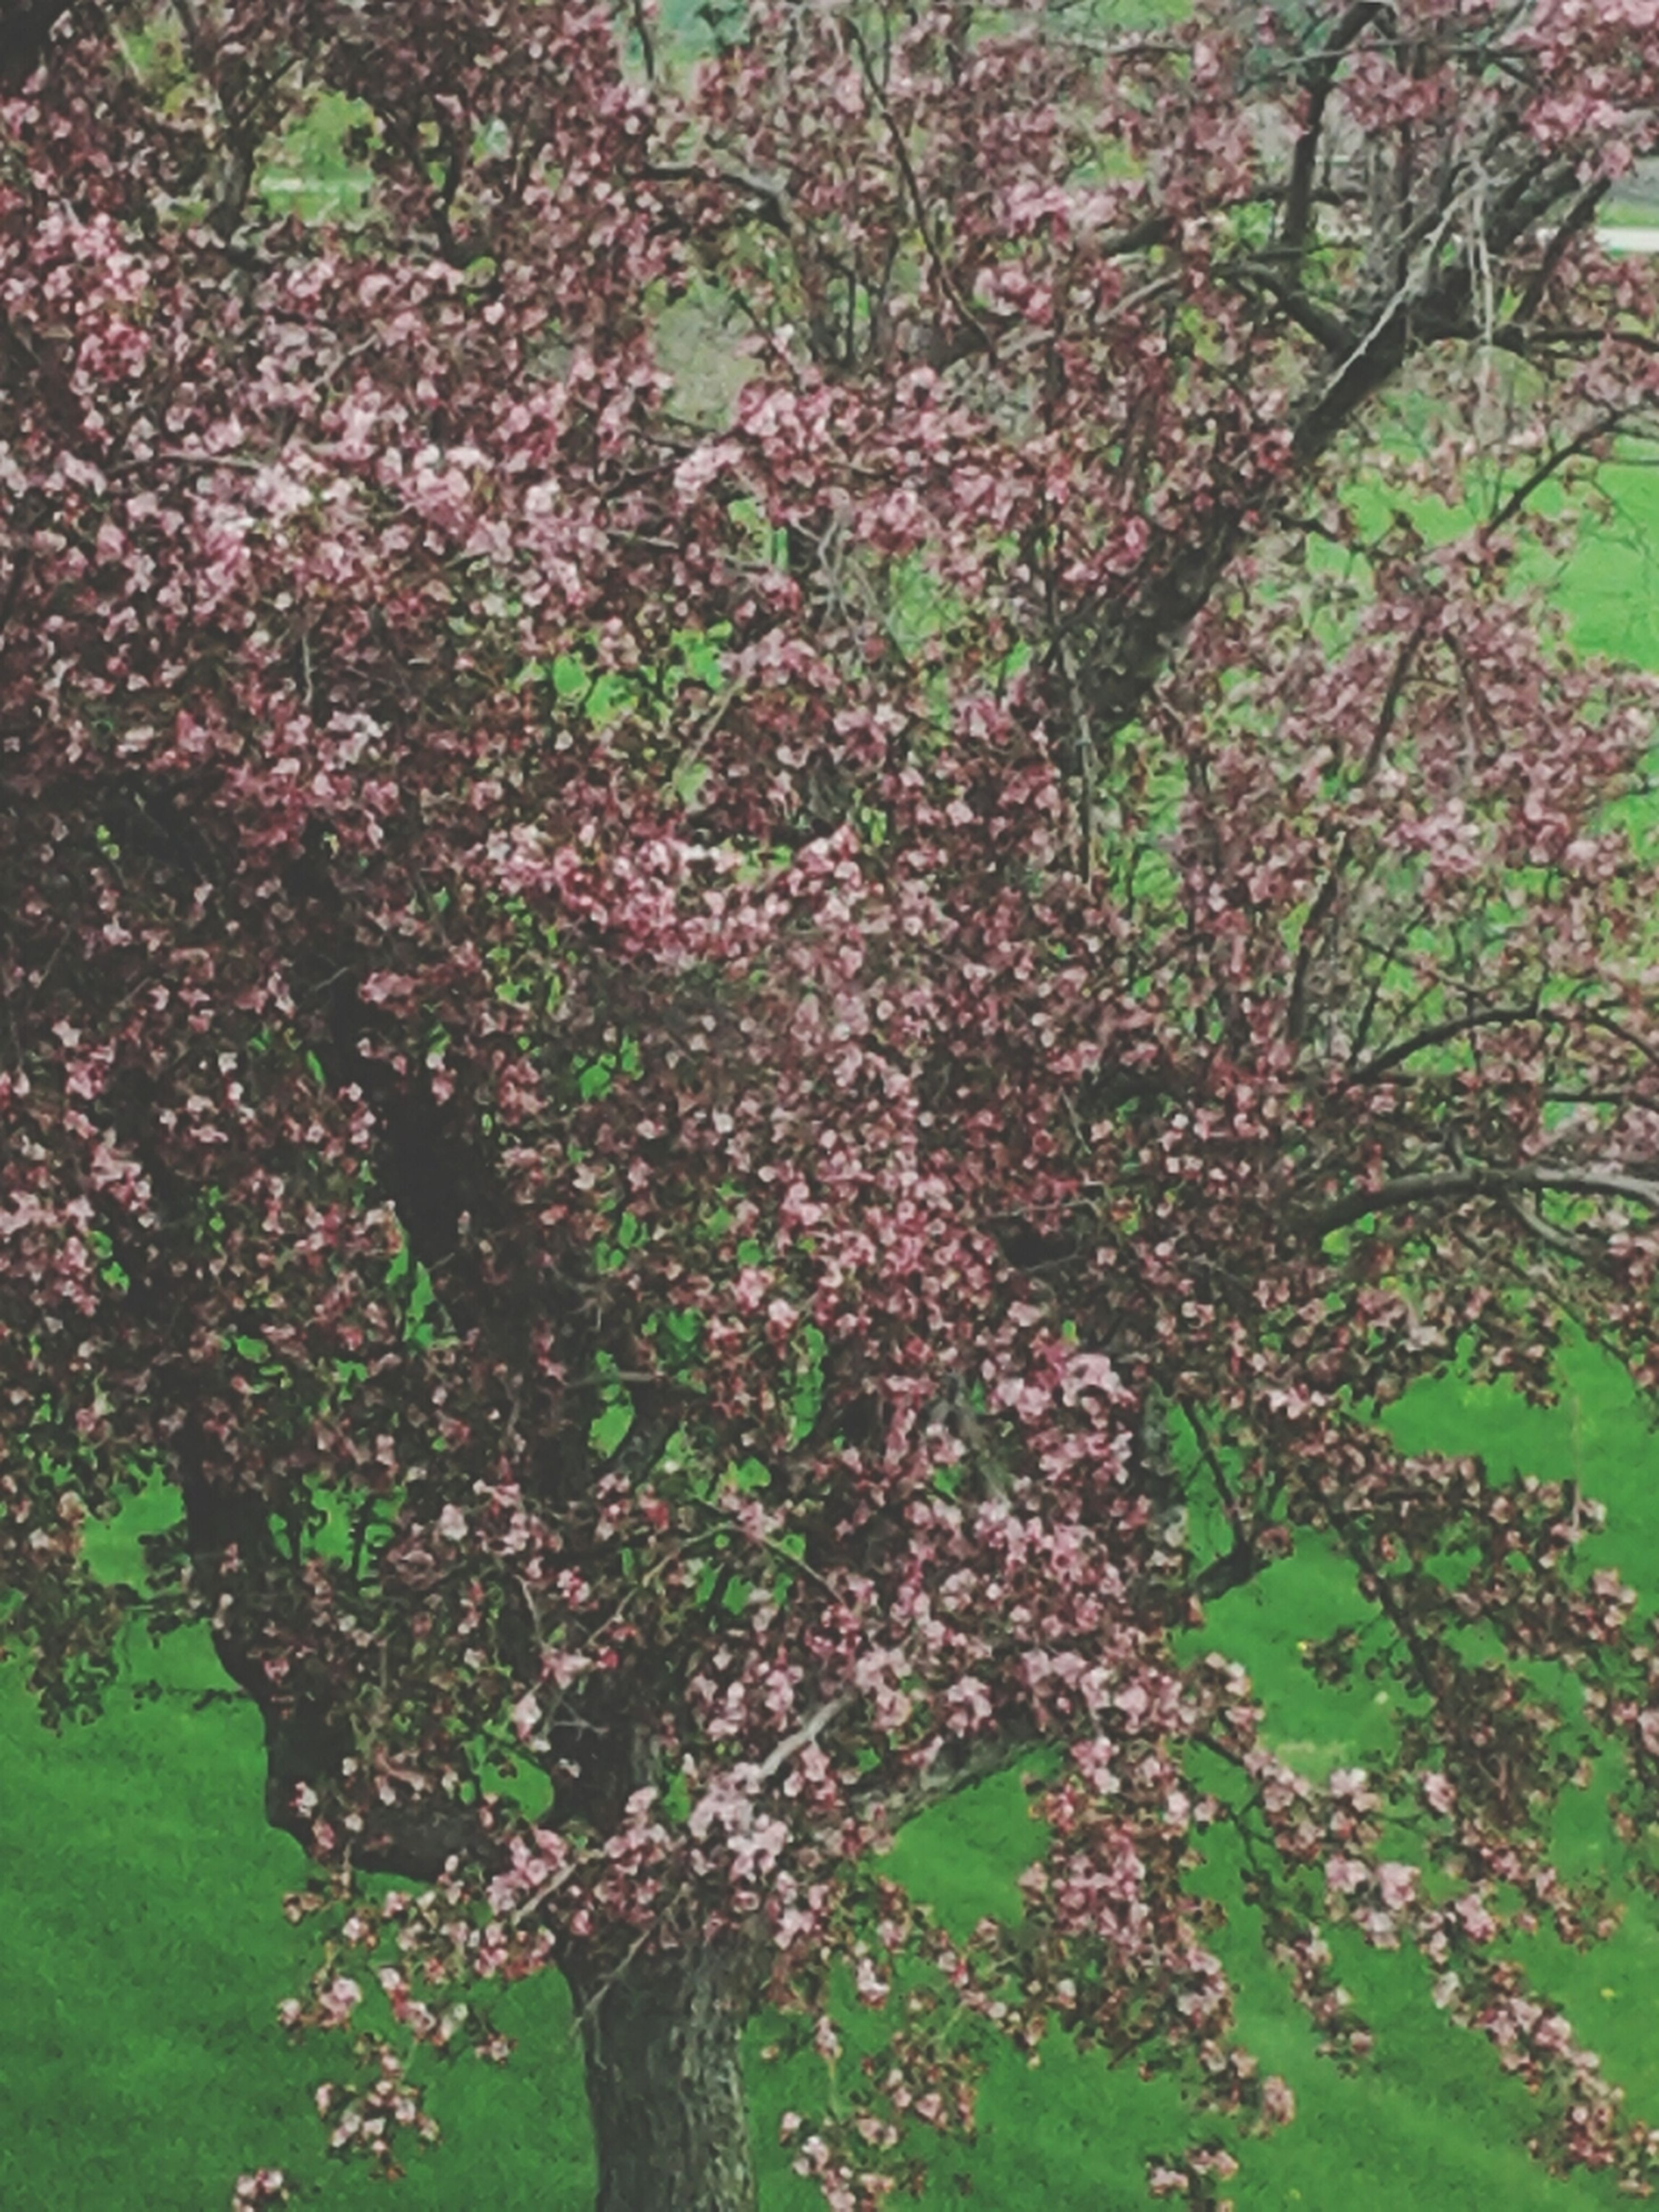 growth, flower, tree, freshness, beauty in nature, nature, plant, branch, green color, park - man made space, leaf, tranquility, fragility, blossom, pink color, blooming, day, outdoors, growing, in bloom